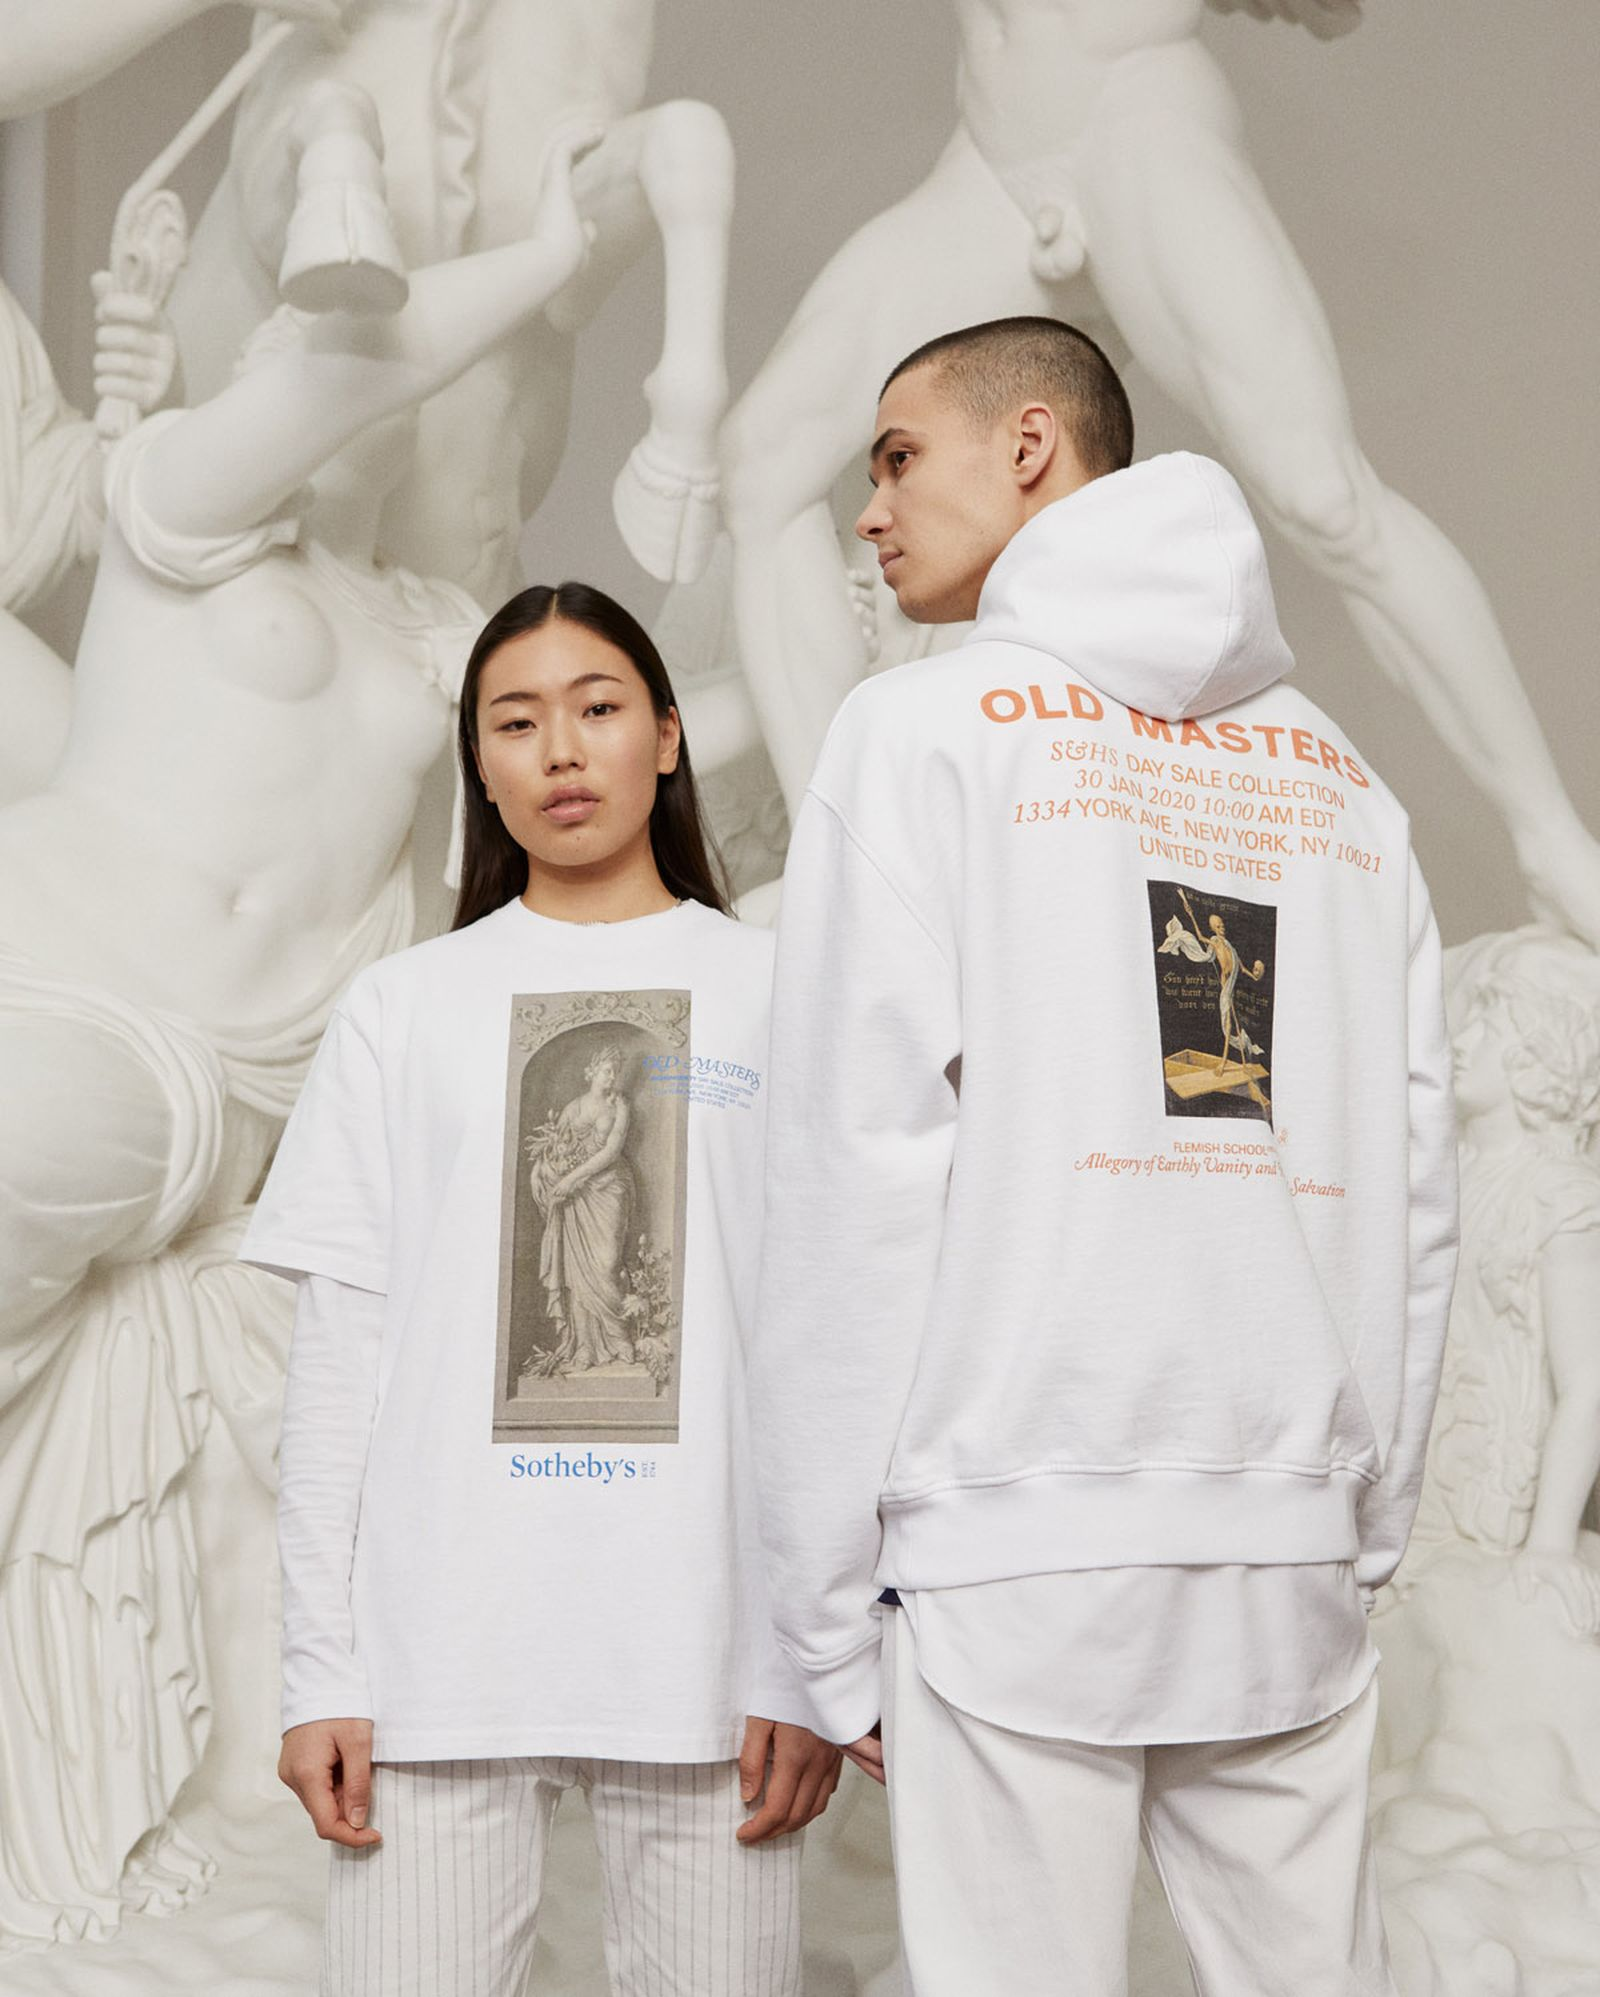 Highsnobiety | Online lifestyle news site covering